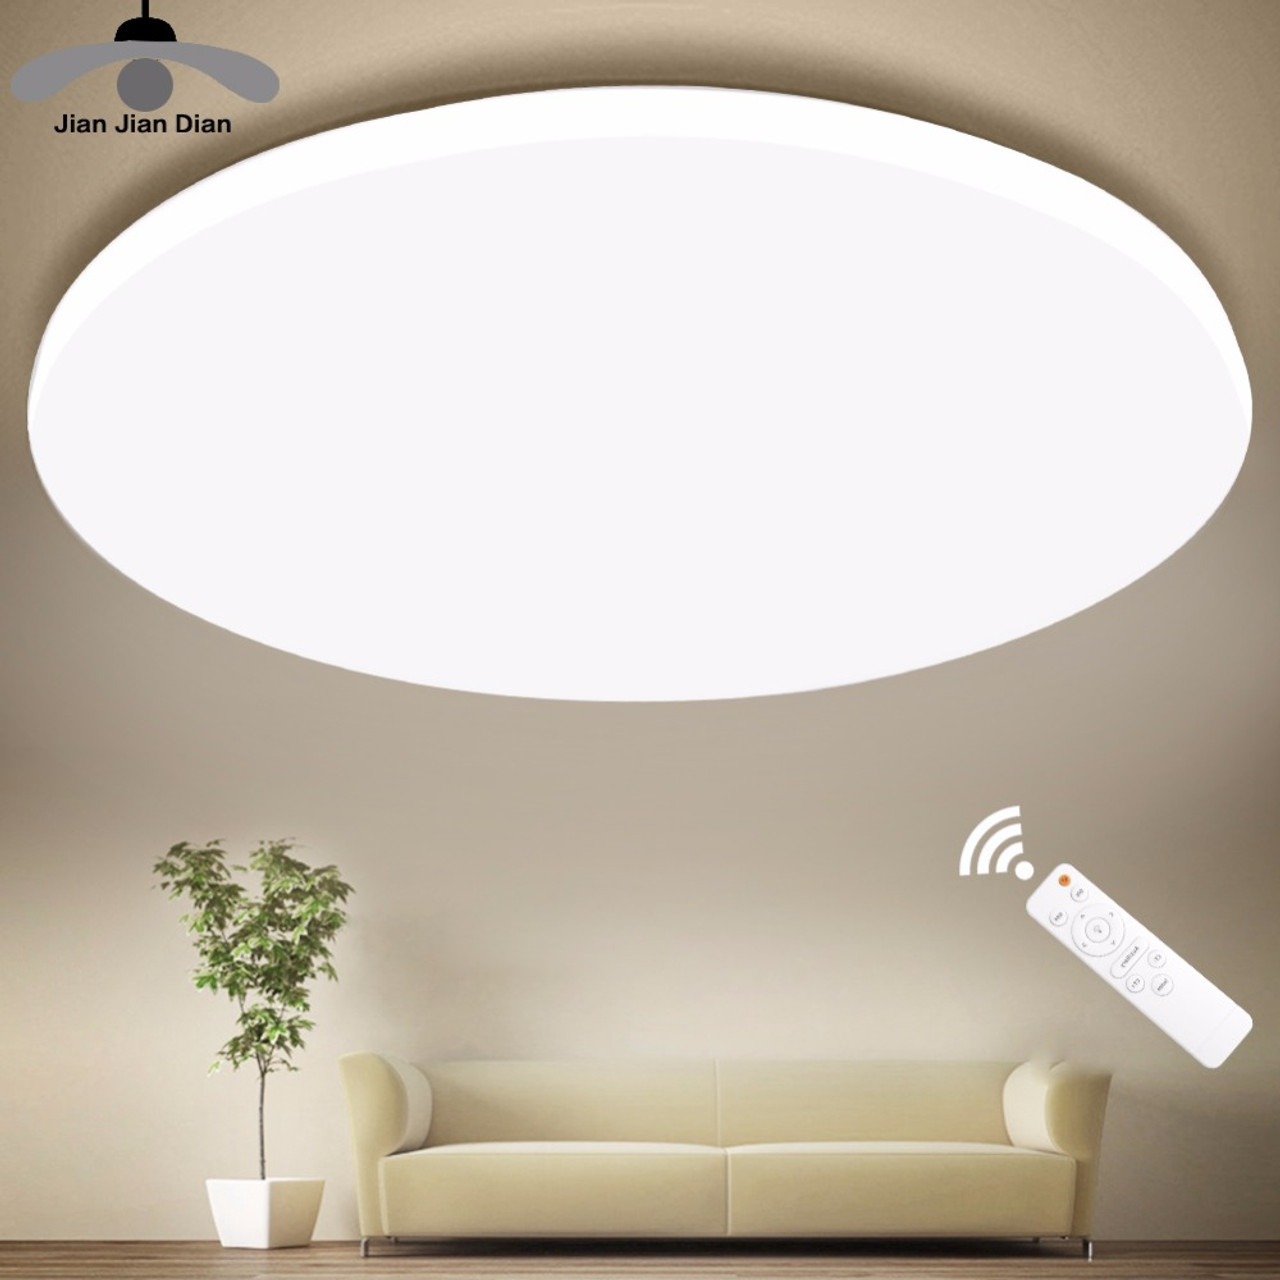 Ultra thin led ceiling led ceiling lights lighting fixture modern lamp living room bedroom kitchen surface mount remote control onshopdeals com